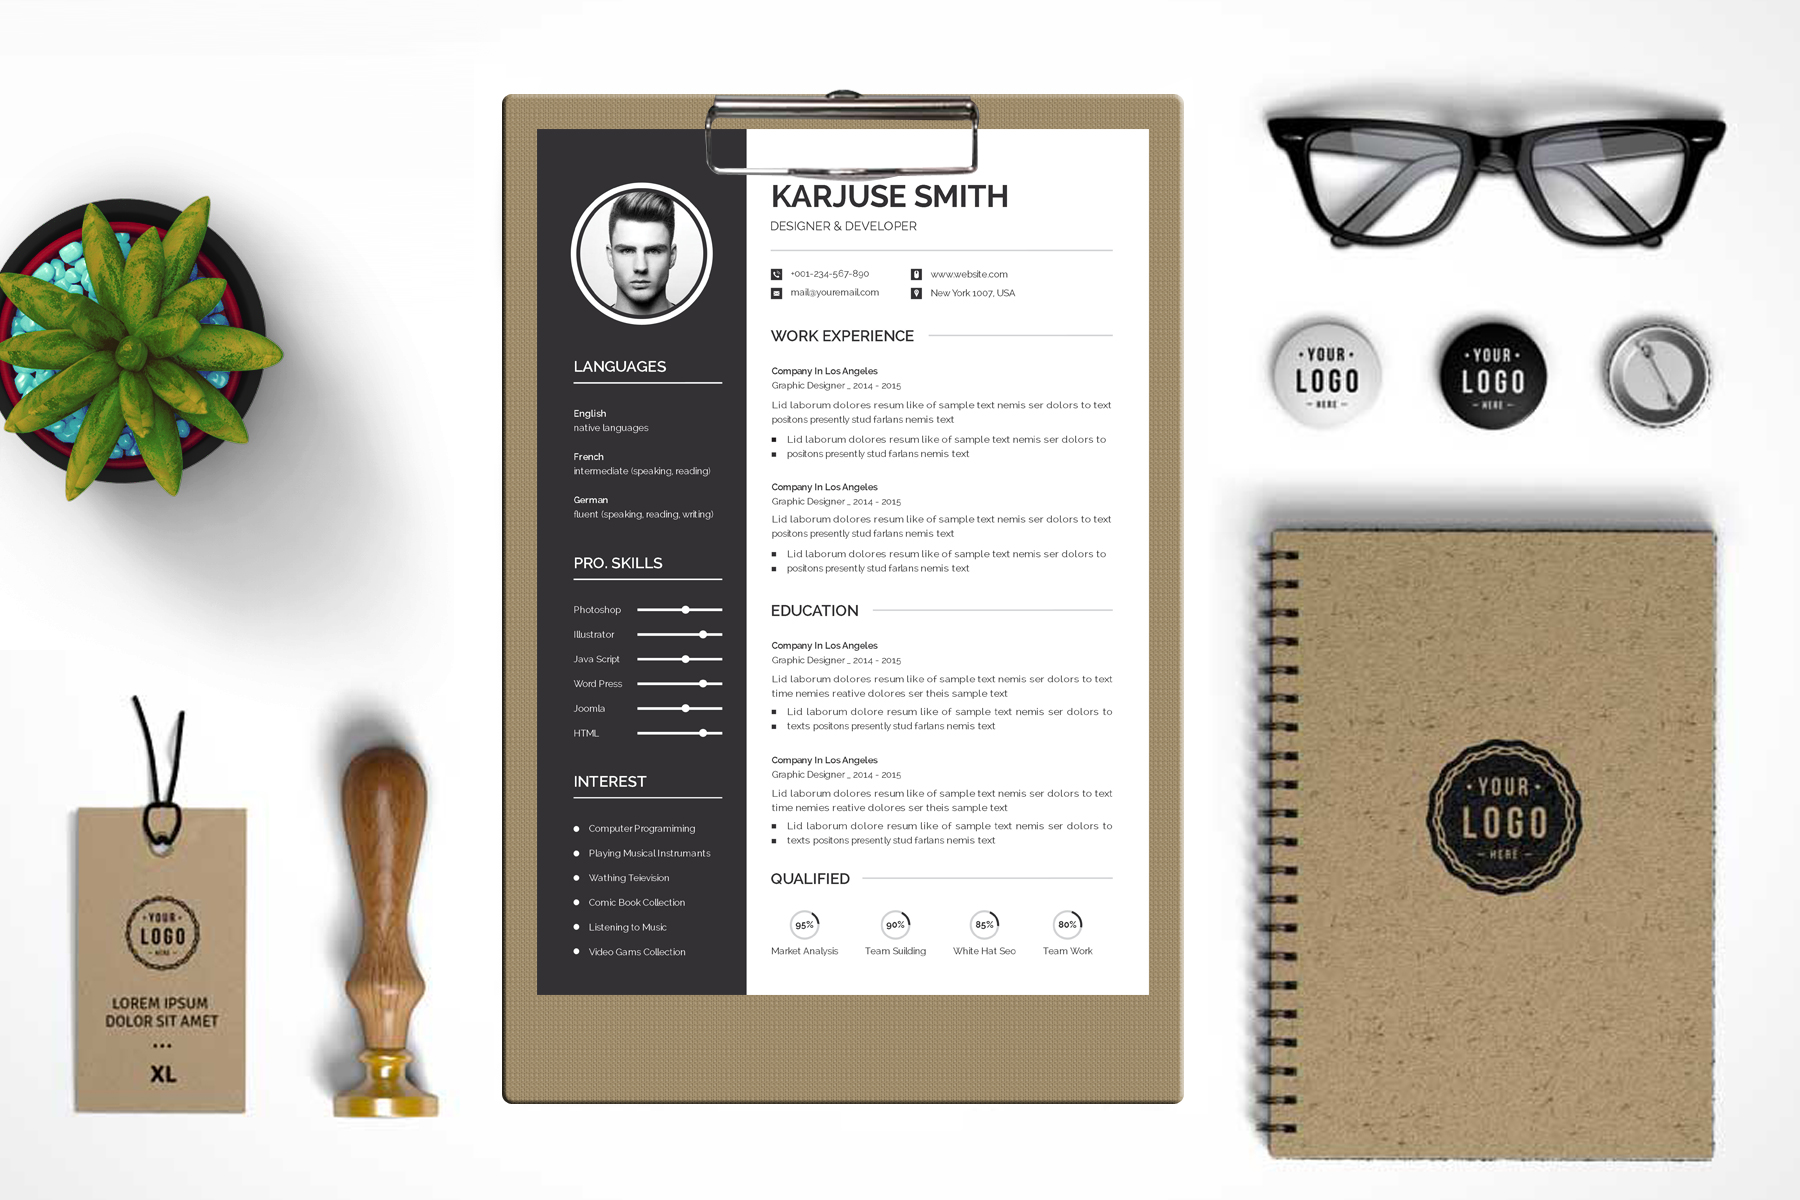 Karjuse Smith - Resume Template